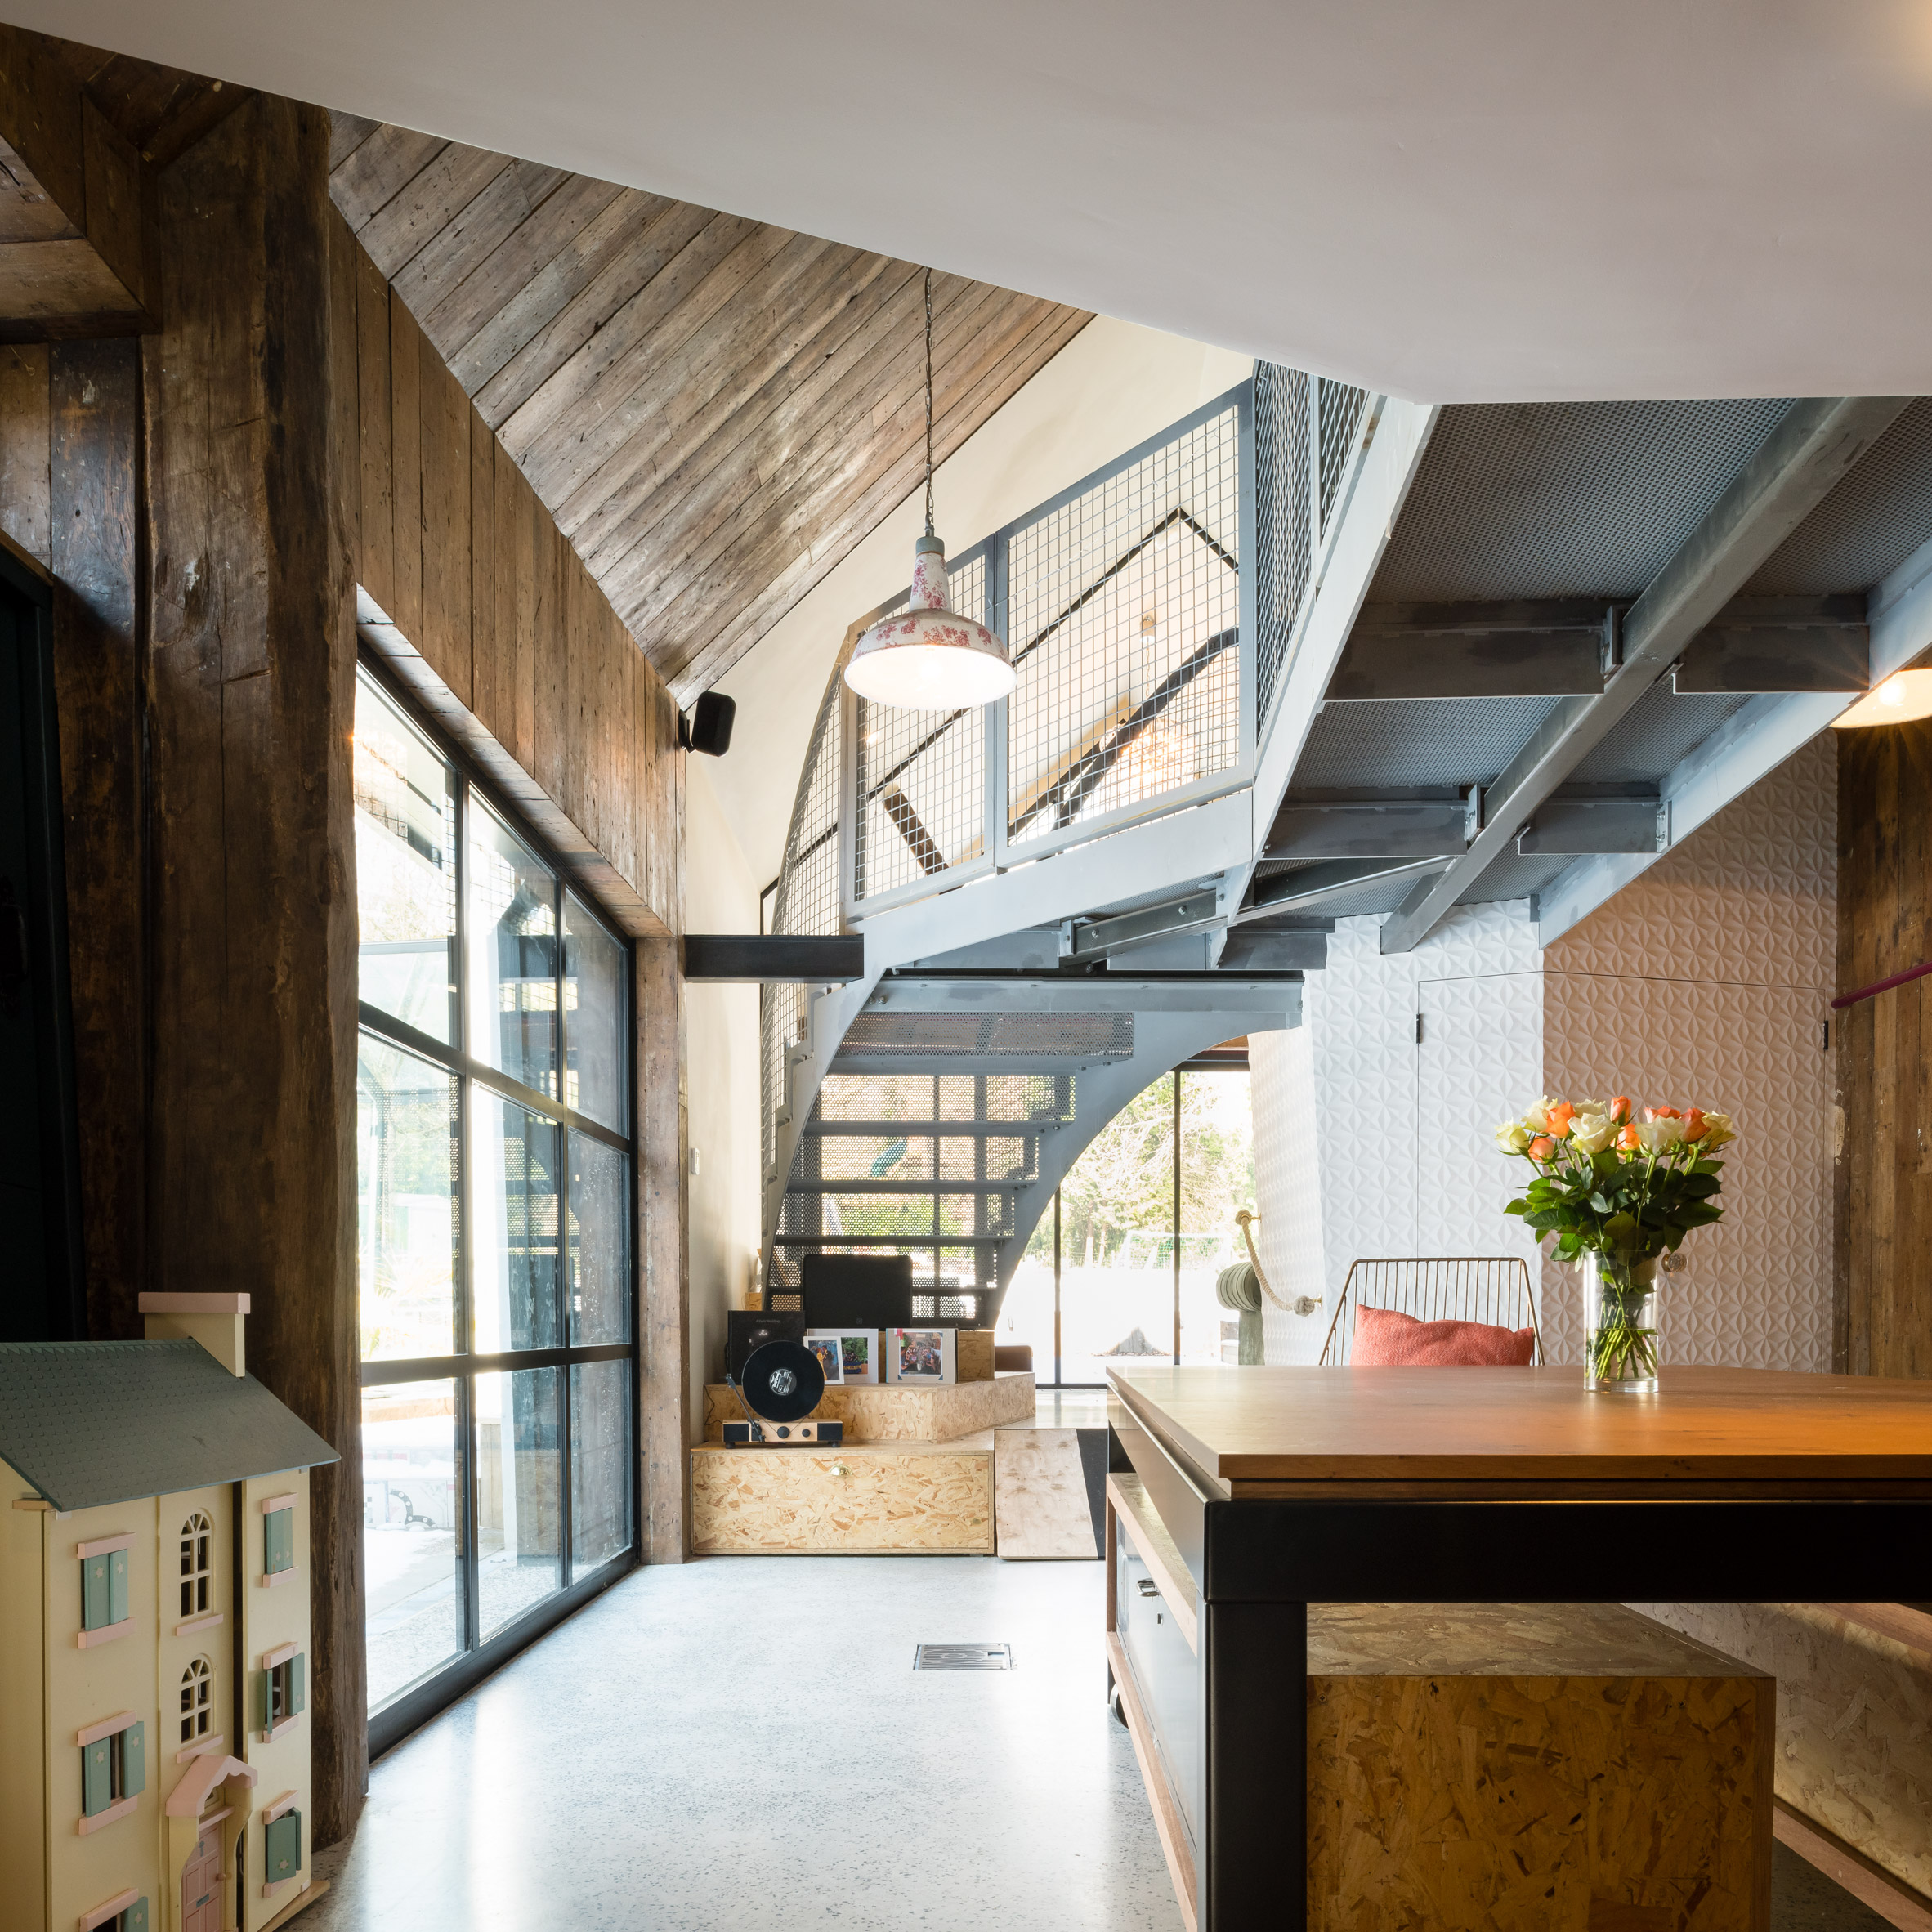 stanyards-farmstead-alter-company-architecture-residential-extensions-uk-cottages_dezainaa.jpg